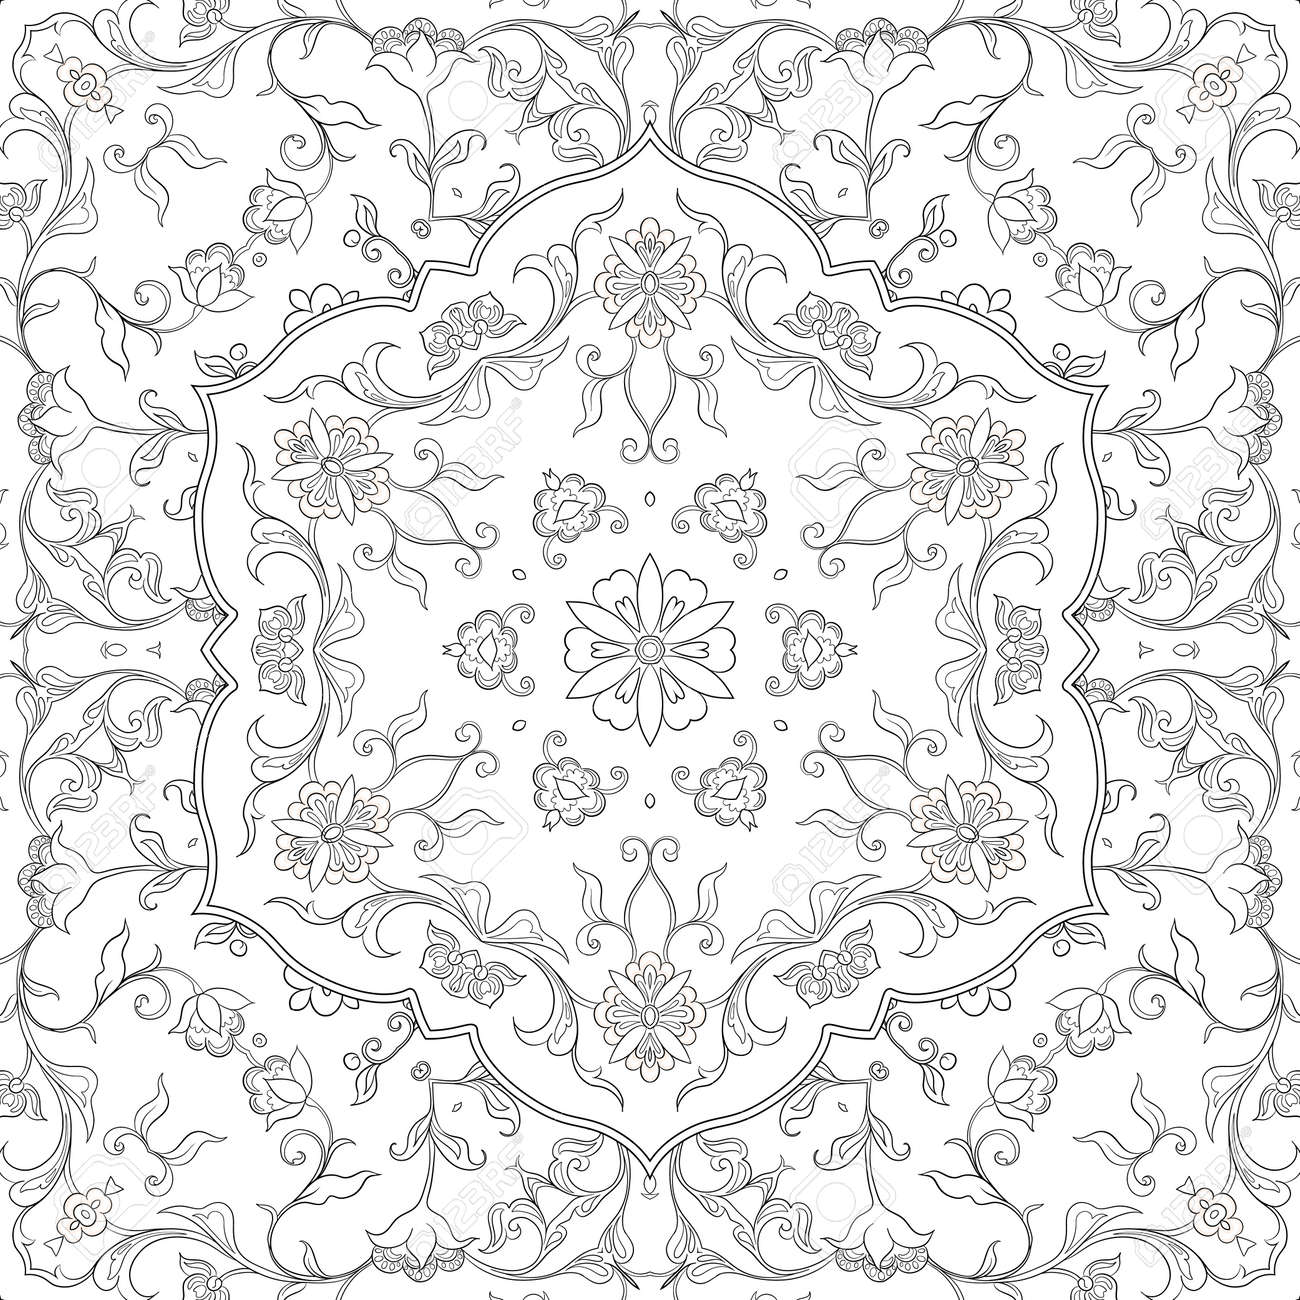 Eastern ethnic motif, traditional muslim ornament. Seamless pattern, background. Vector illustration - 133928616